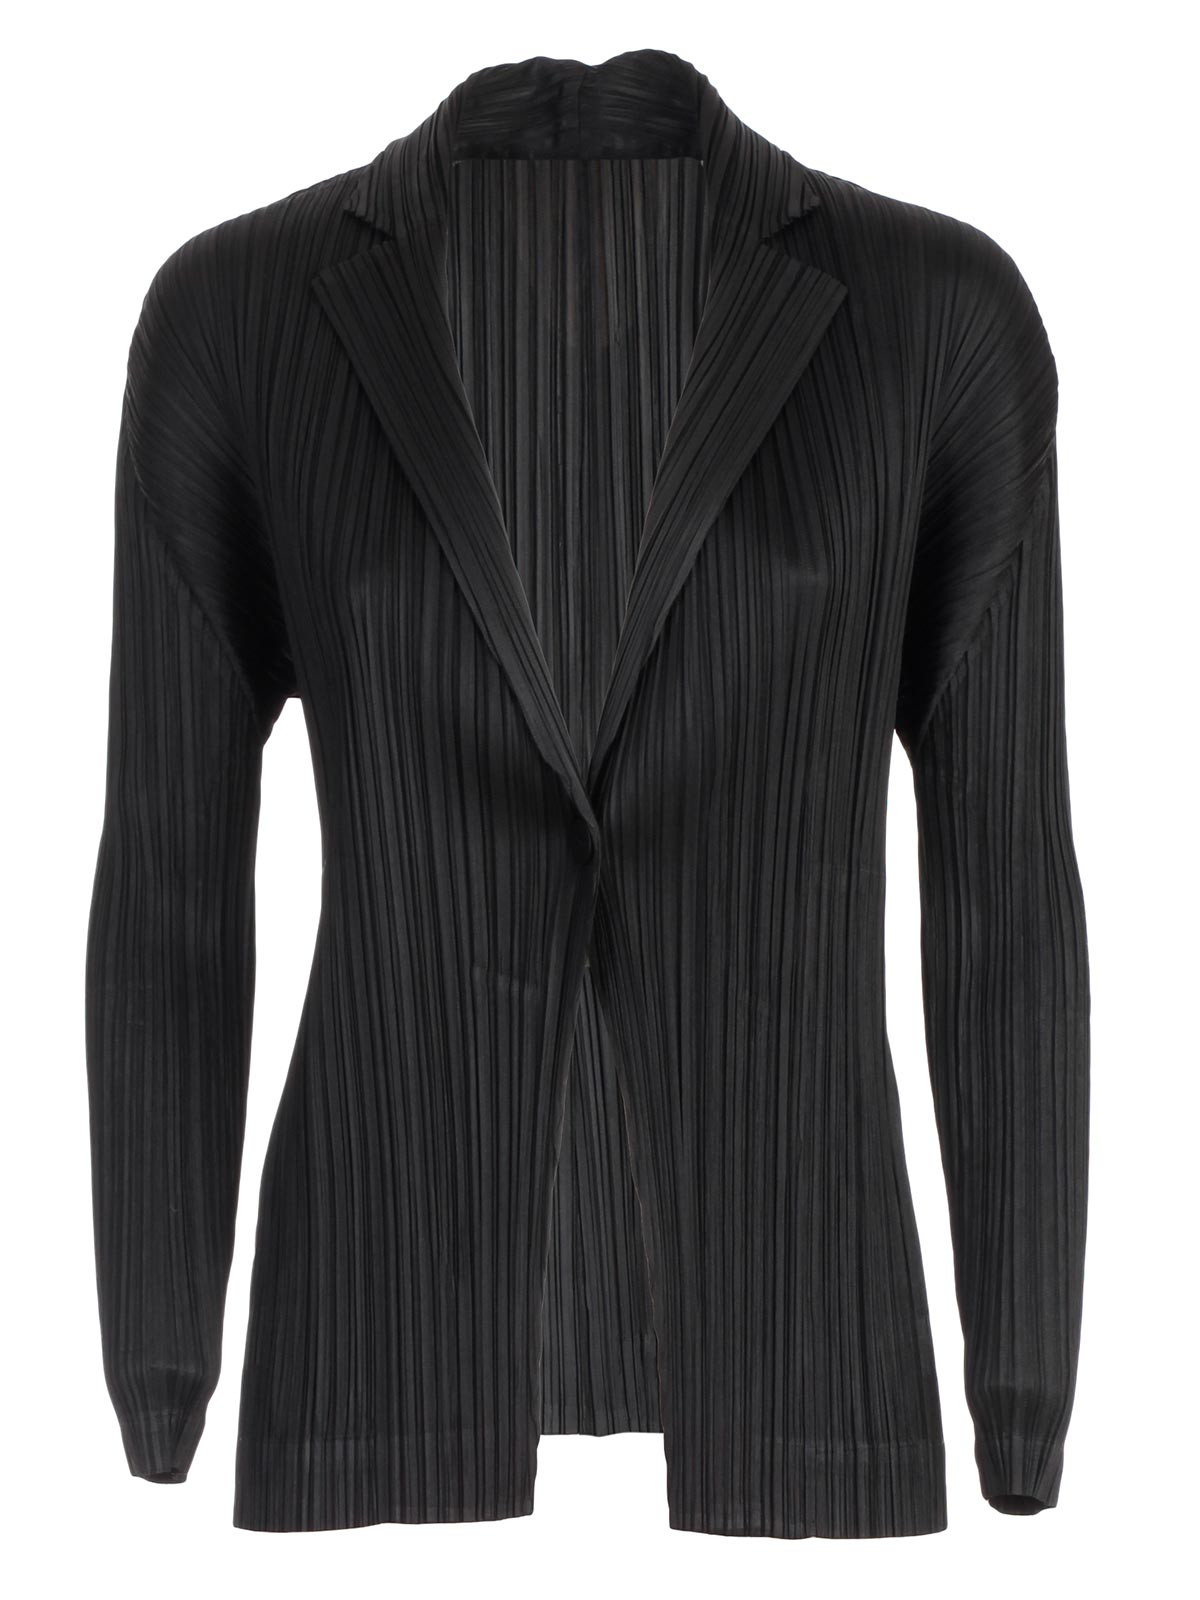 Picture of Pleats Please By Issey Miyake Jacket